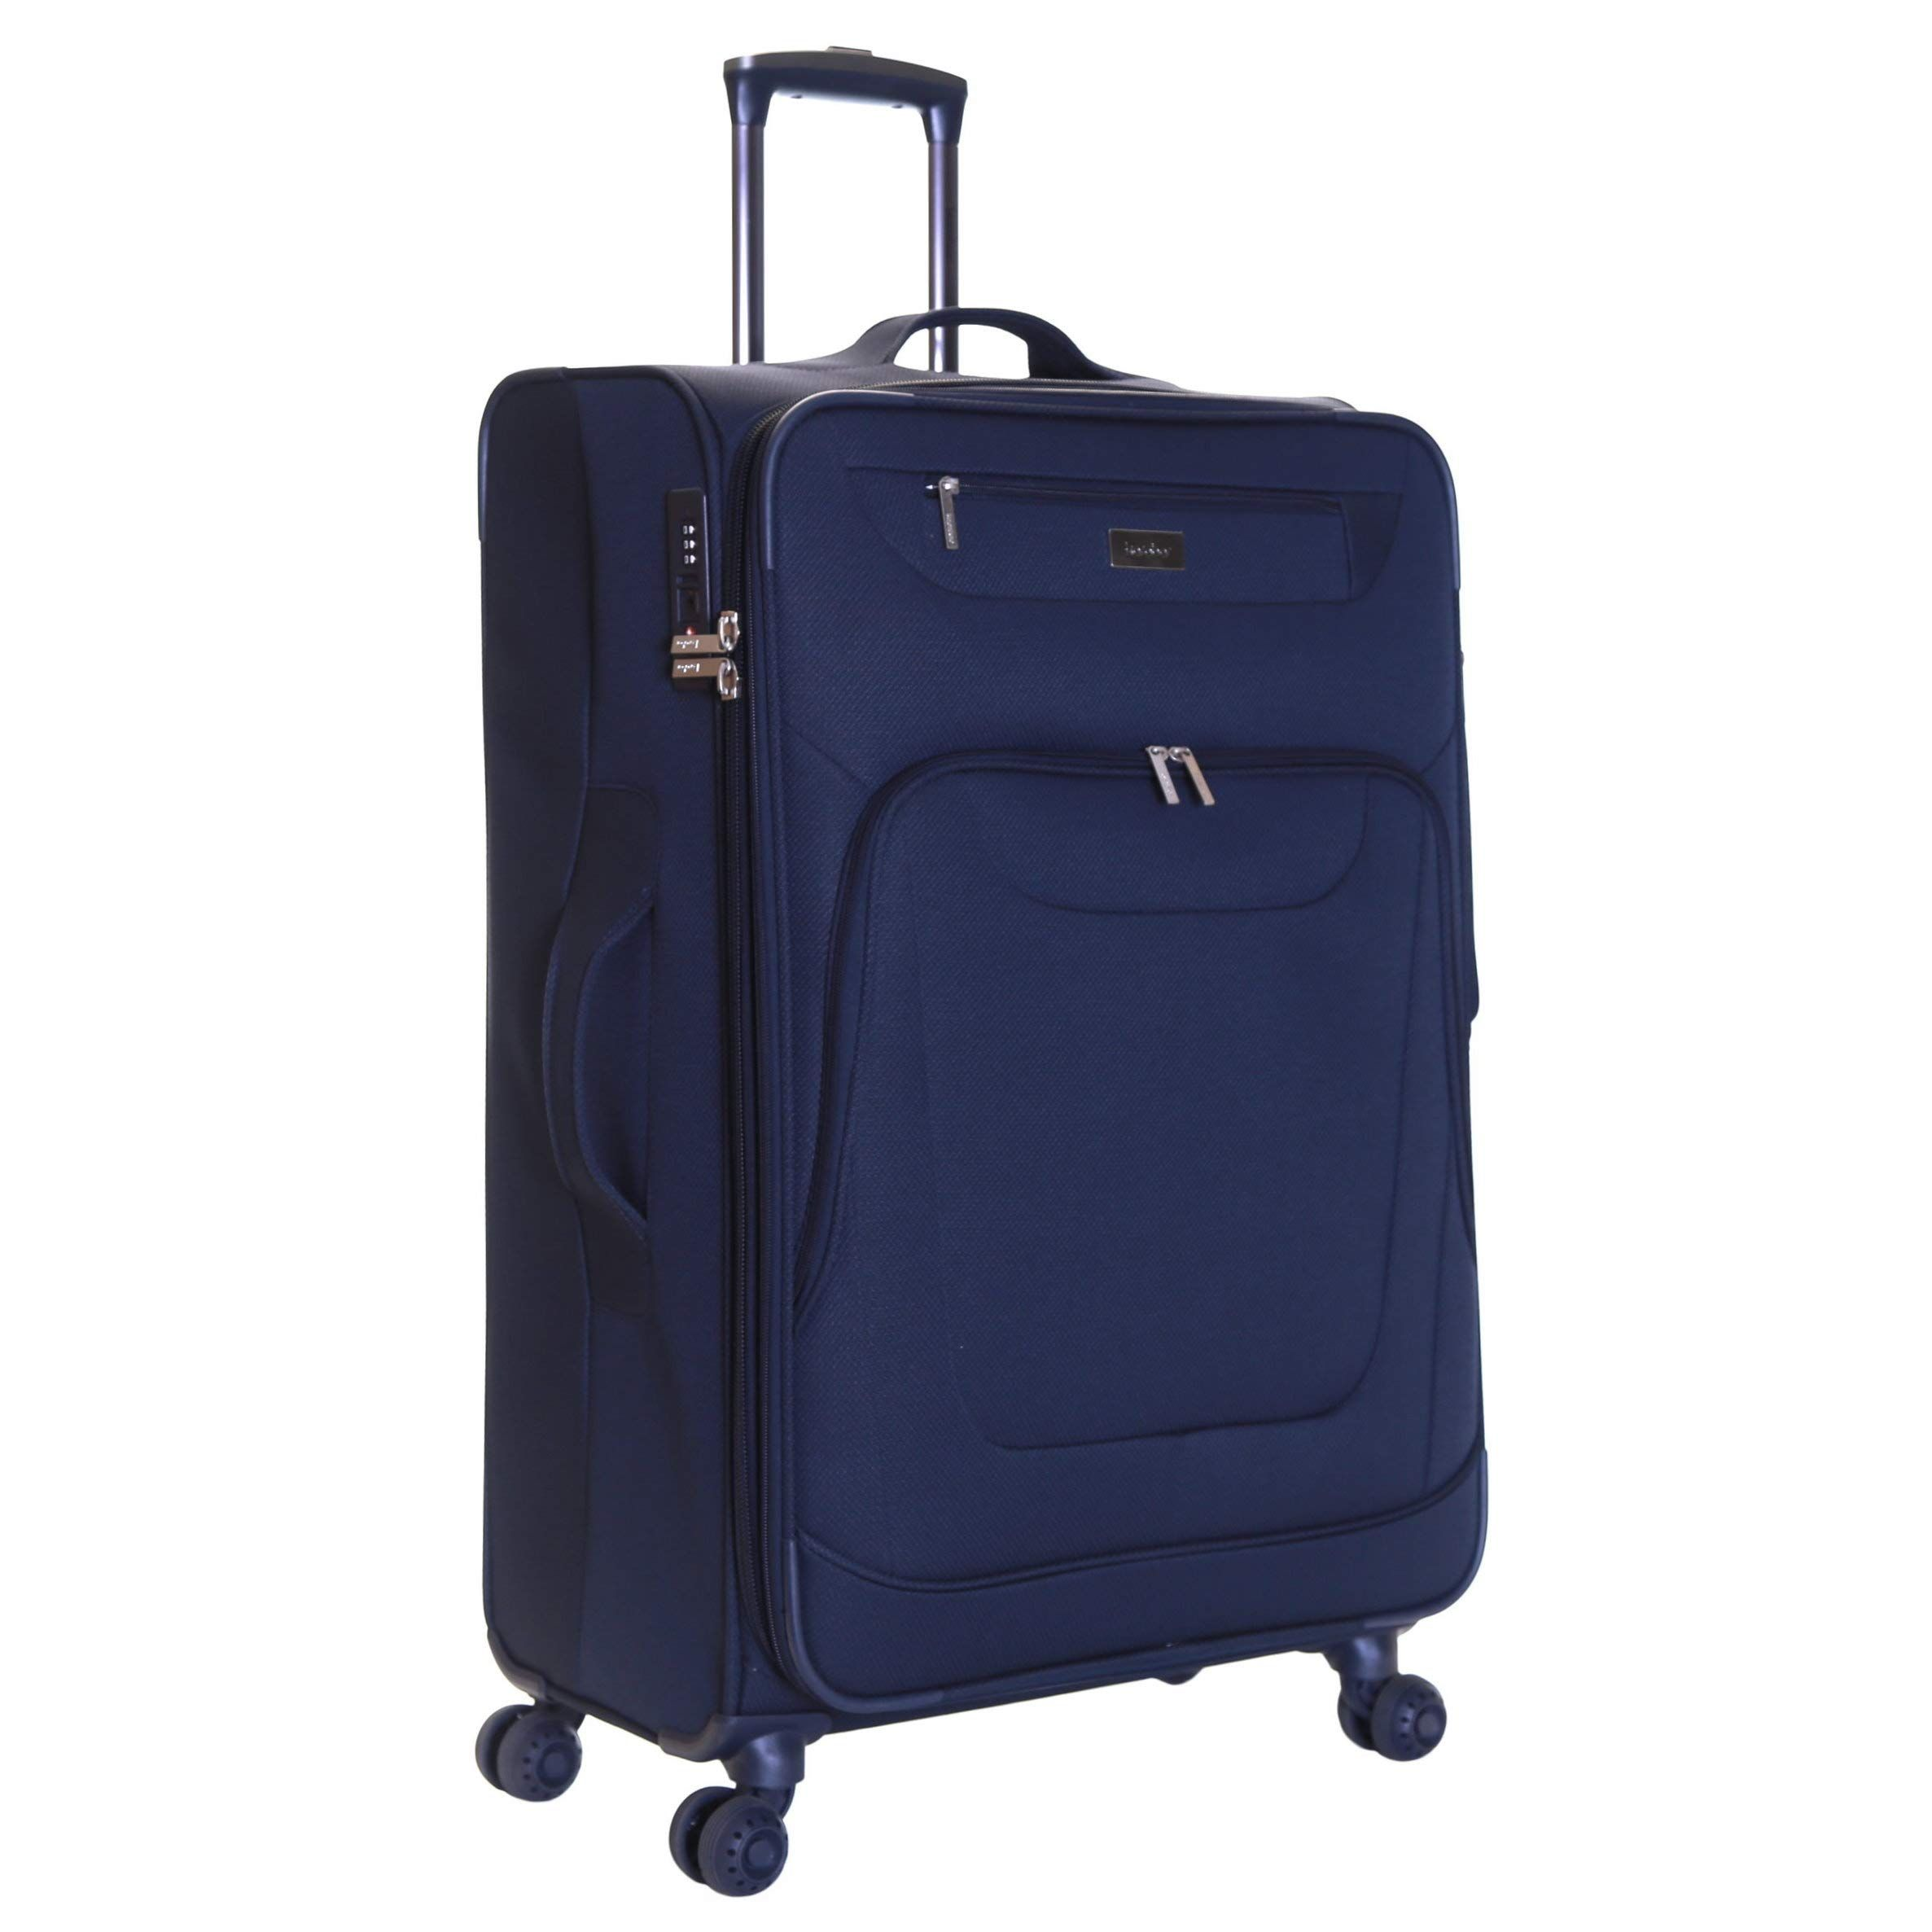 Trolley Case Luggage Suitcases Boarding fold Two Wheels Travel Bags Carry On Hand Luggage Durable Hold Tingting Color : Black, Size : S